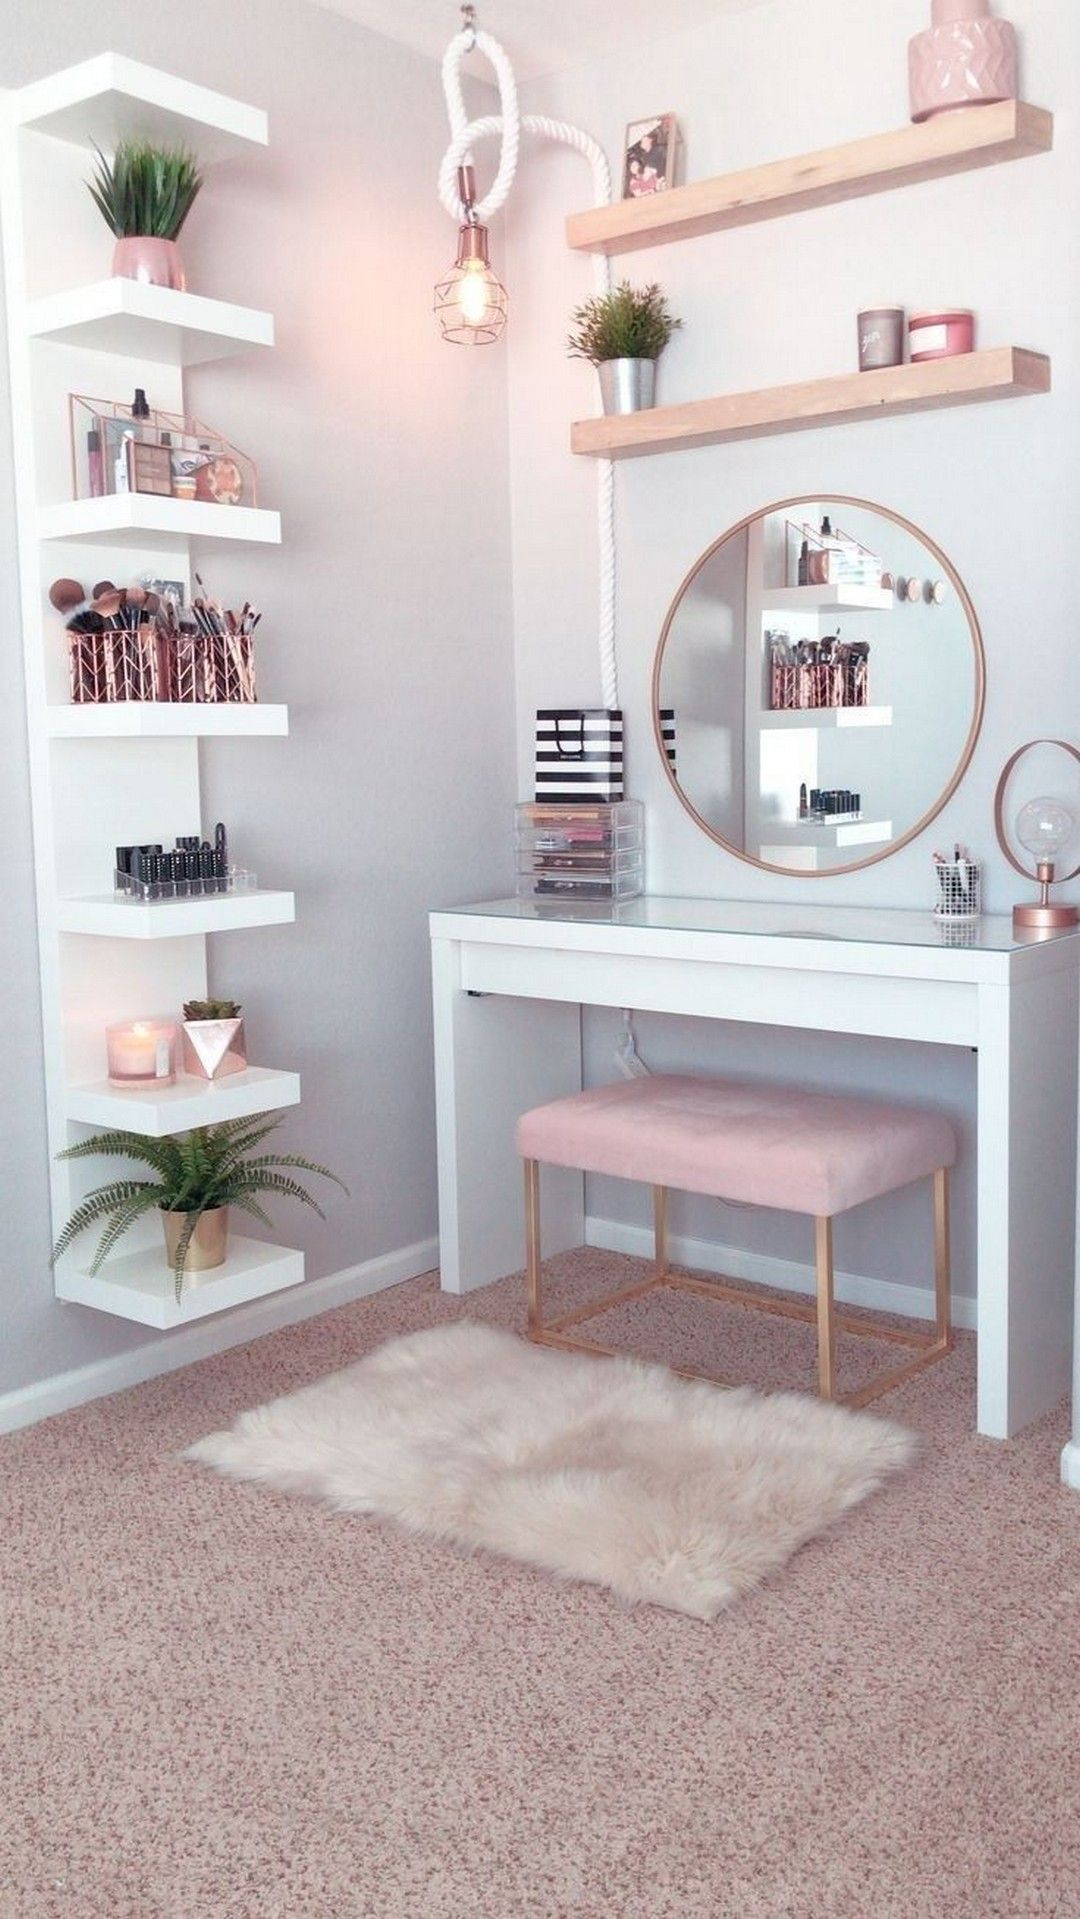 Photo of 26 Makeup Room Ideas To Brighten Your Morning Routine